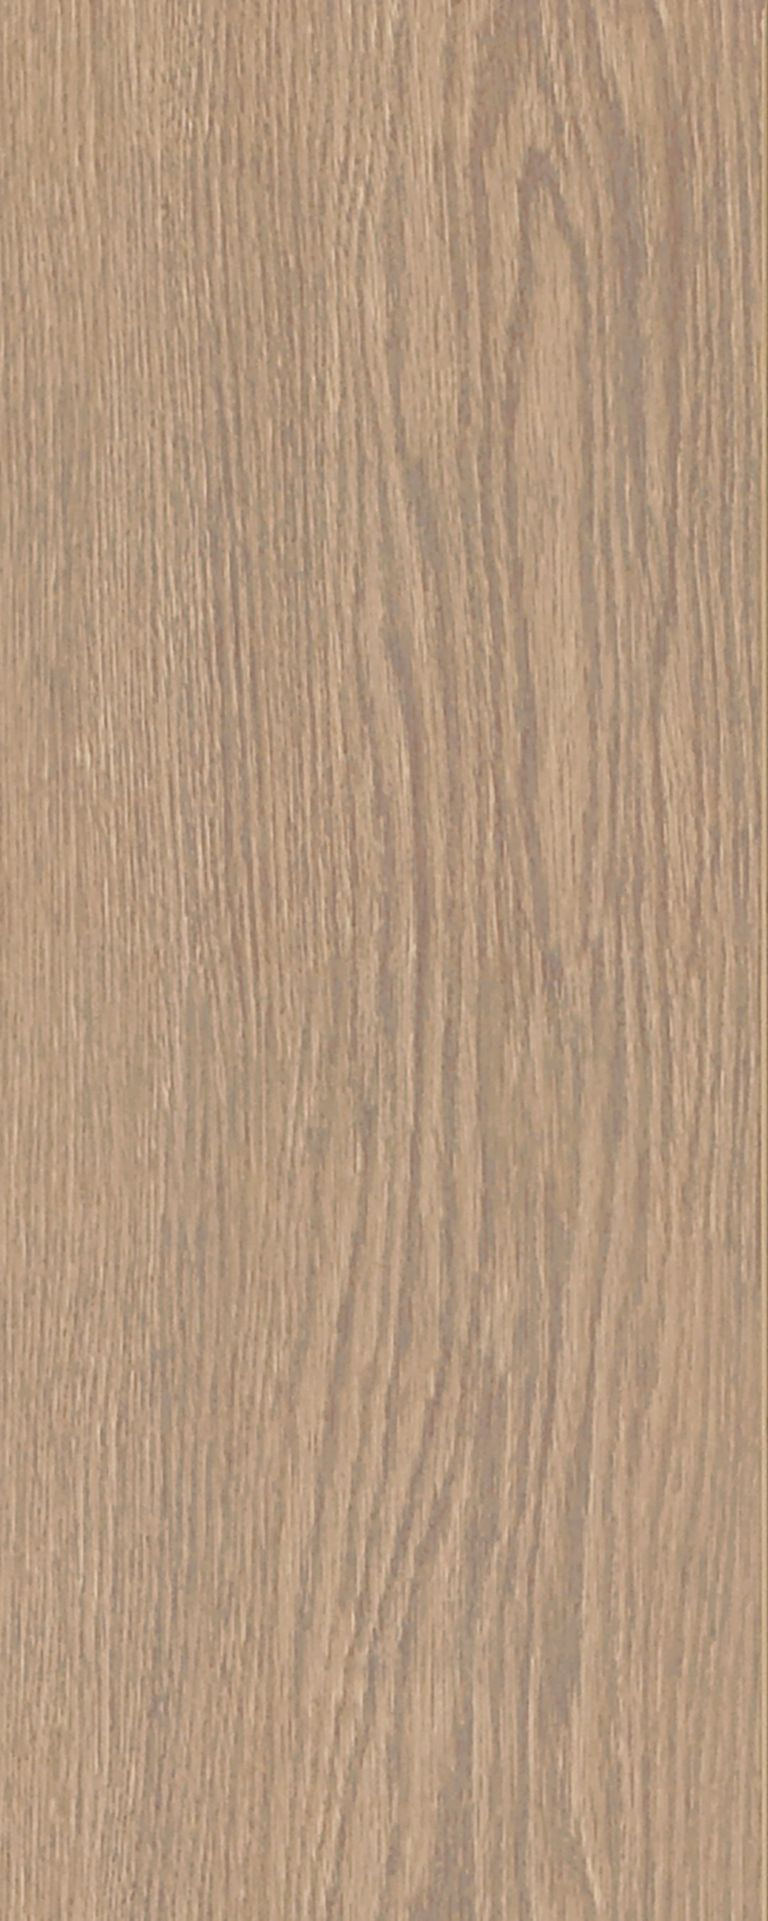 New England Long Plank - Coastline Clam Laminate L6579